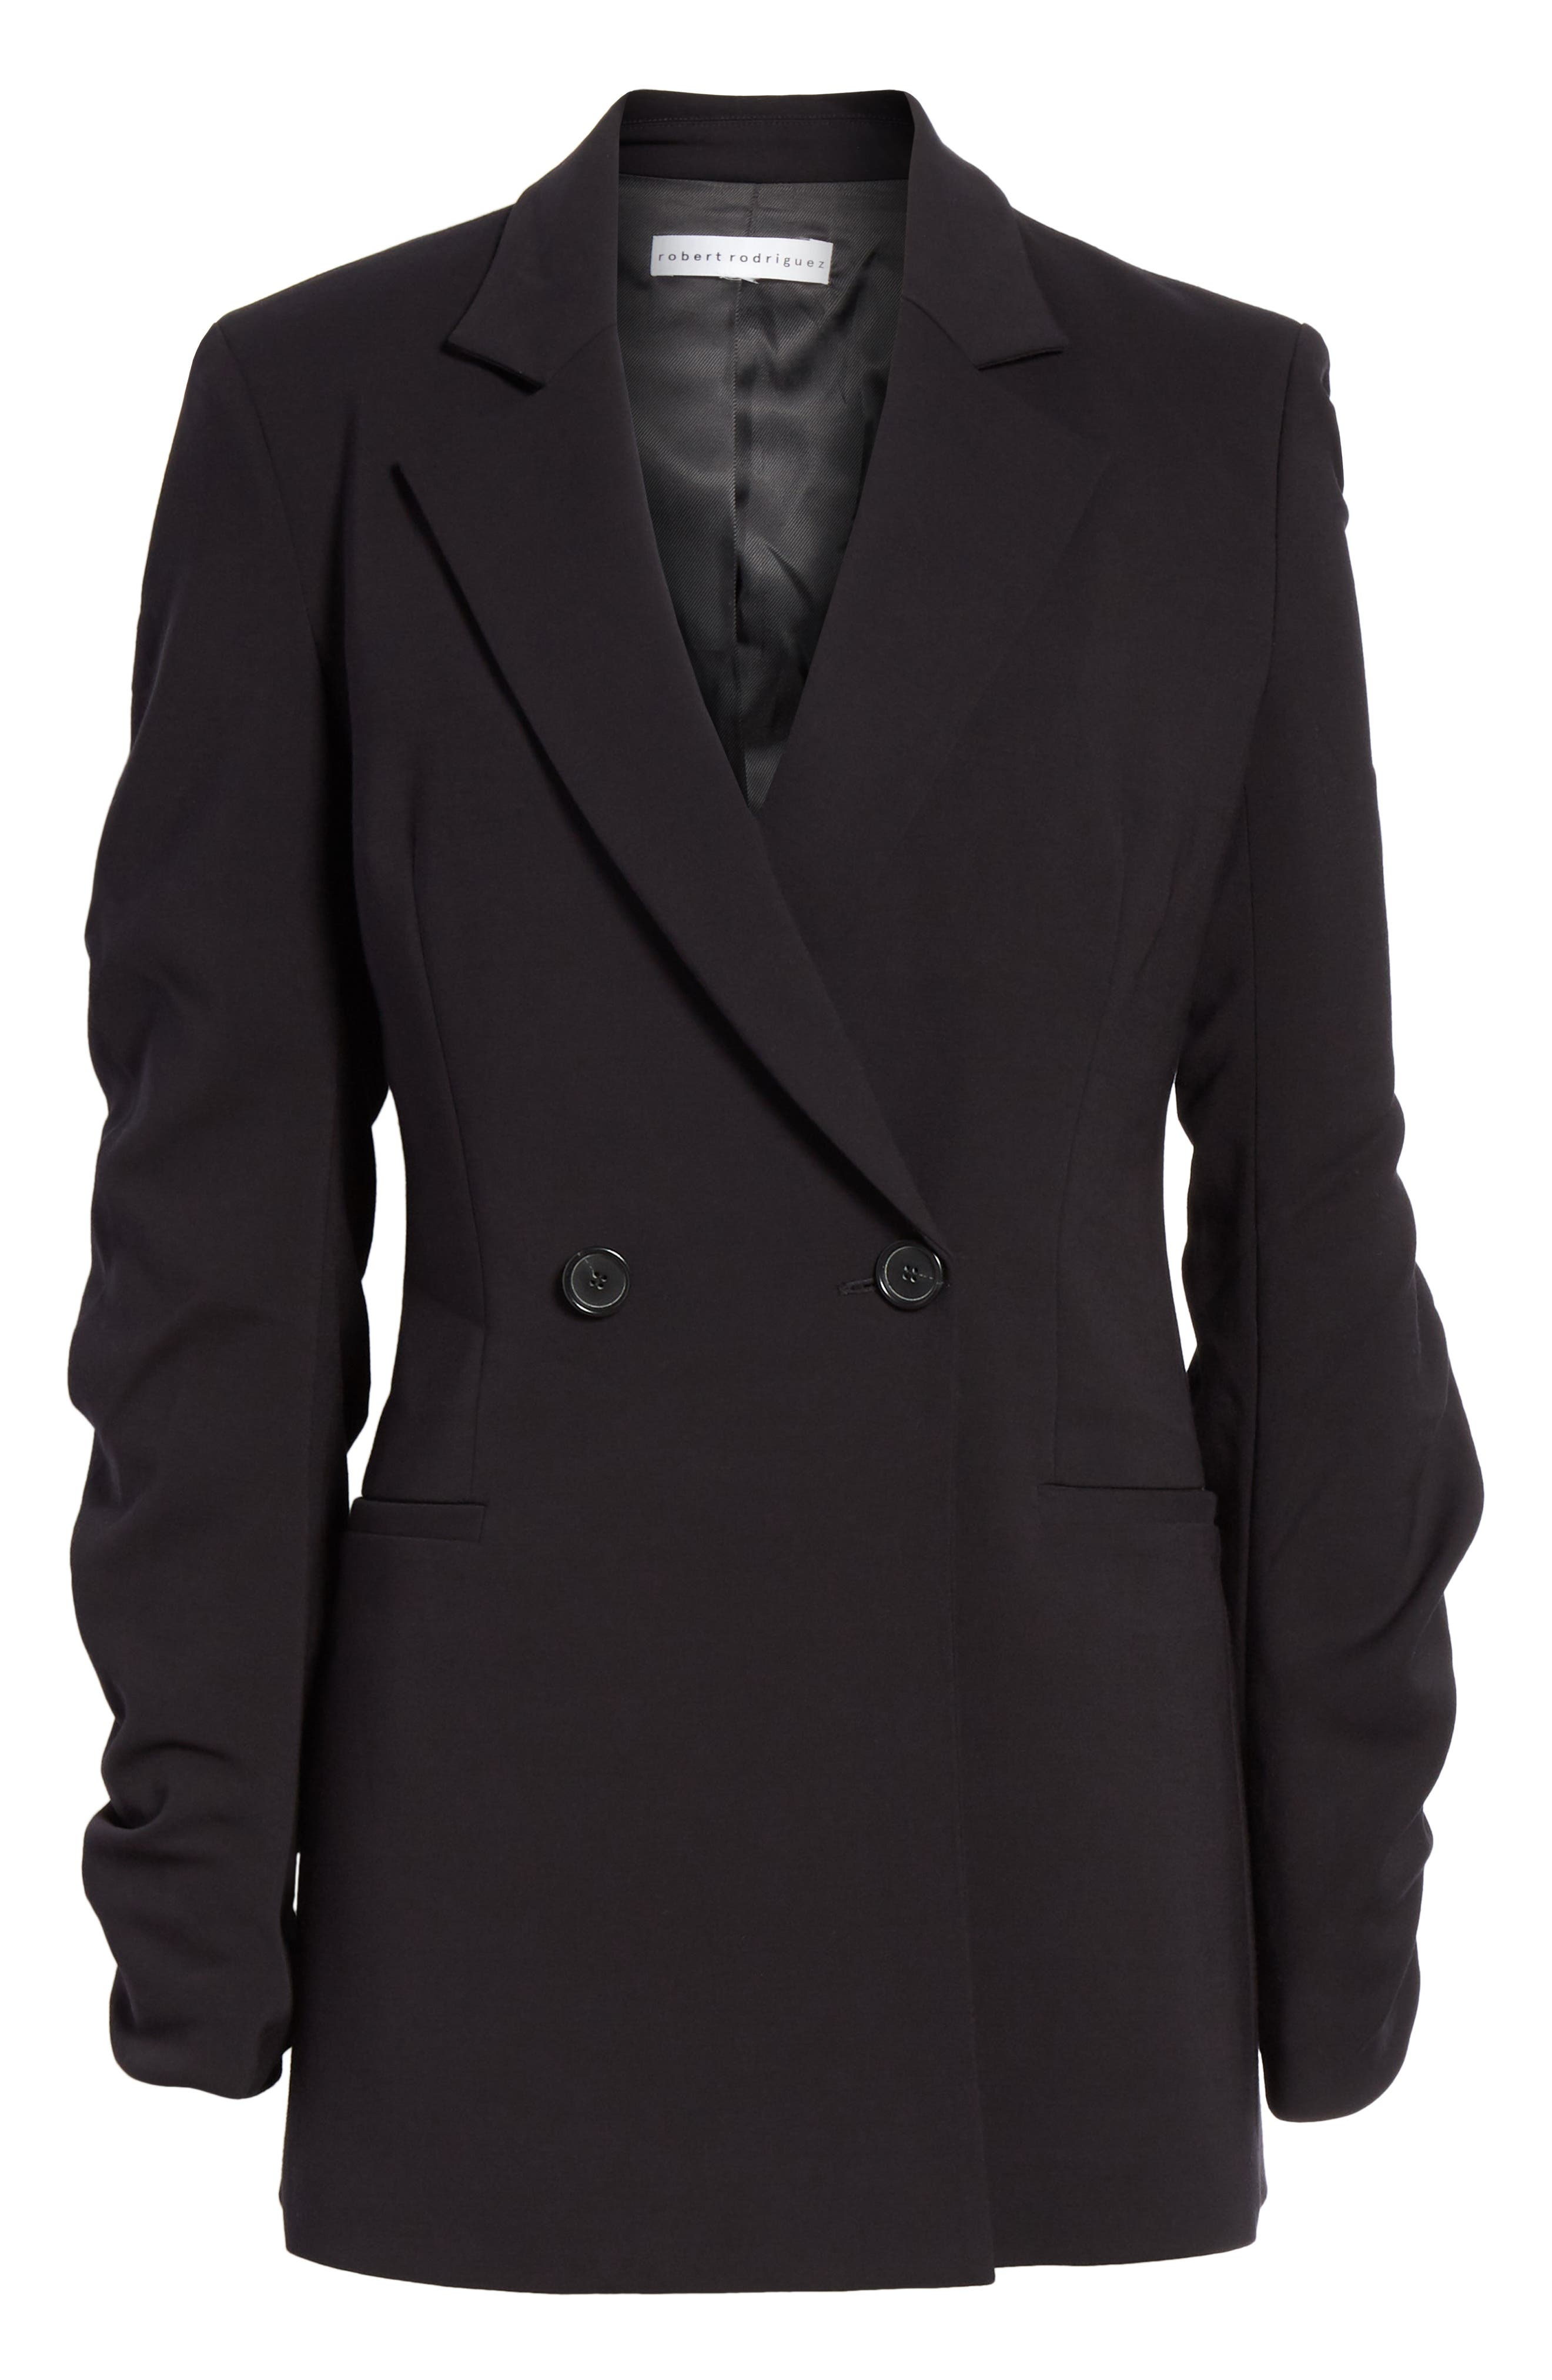 Ruched Sleeve Blazer,                             Alternate thumbnail 6, color,                             001